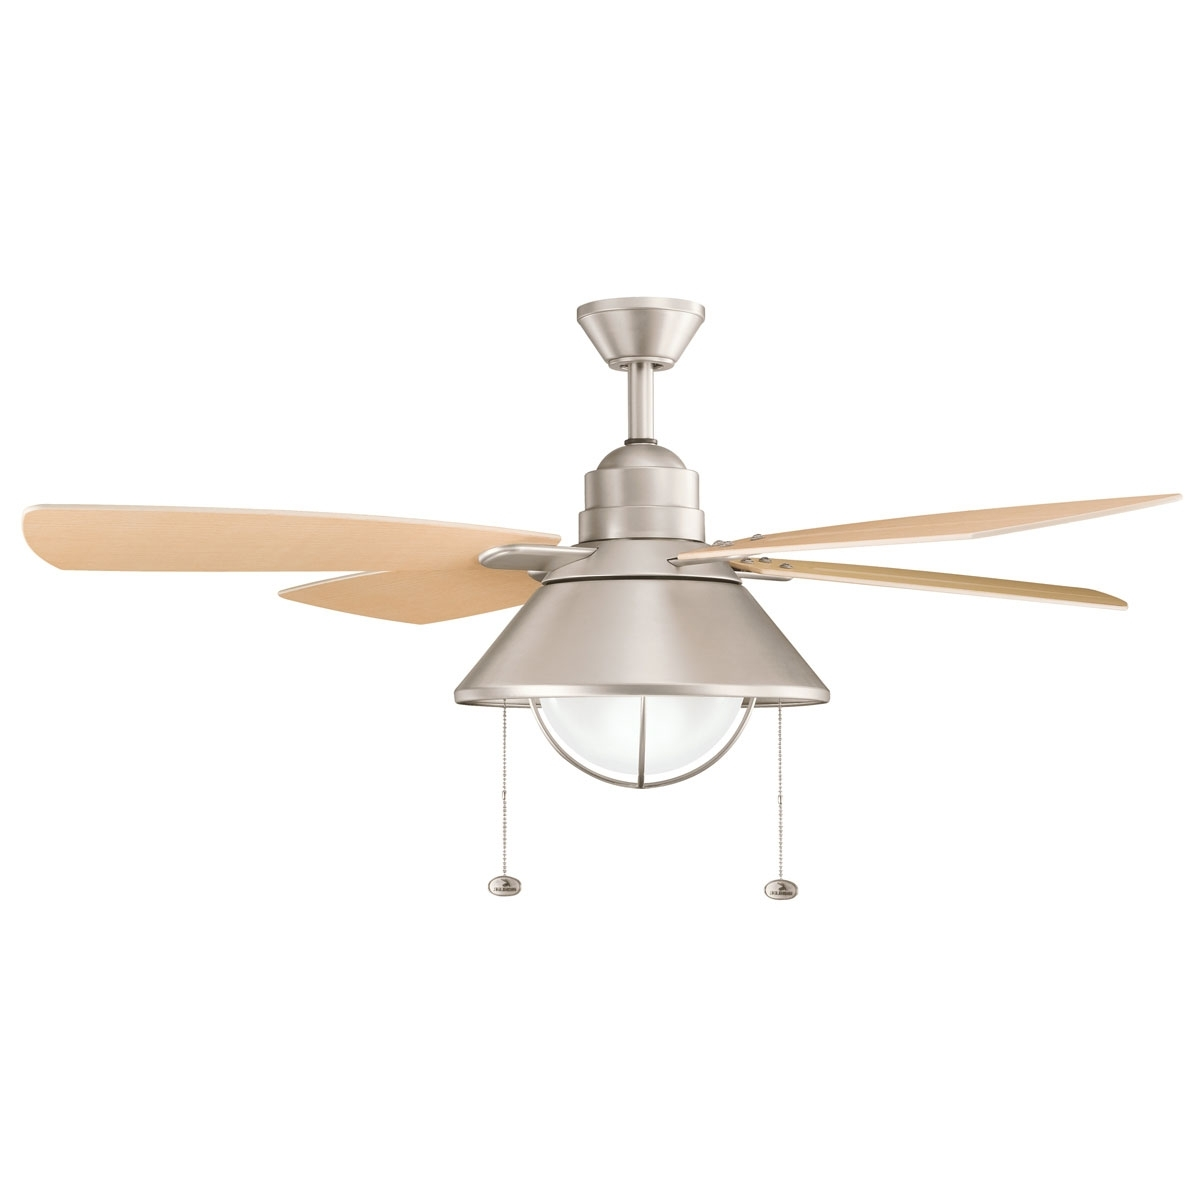 Nautical Outdoor Ceiling Fans Inside Favorite Nautical Ceiling Fans With Lights – Photos House Interior And Fan (View 12 of 20)